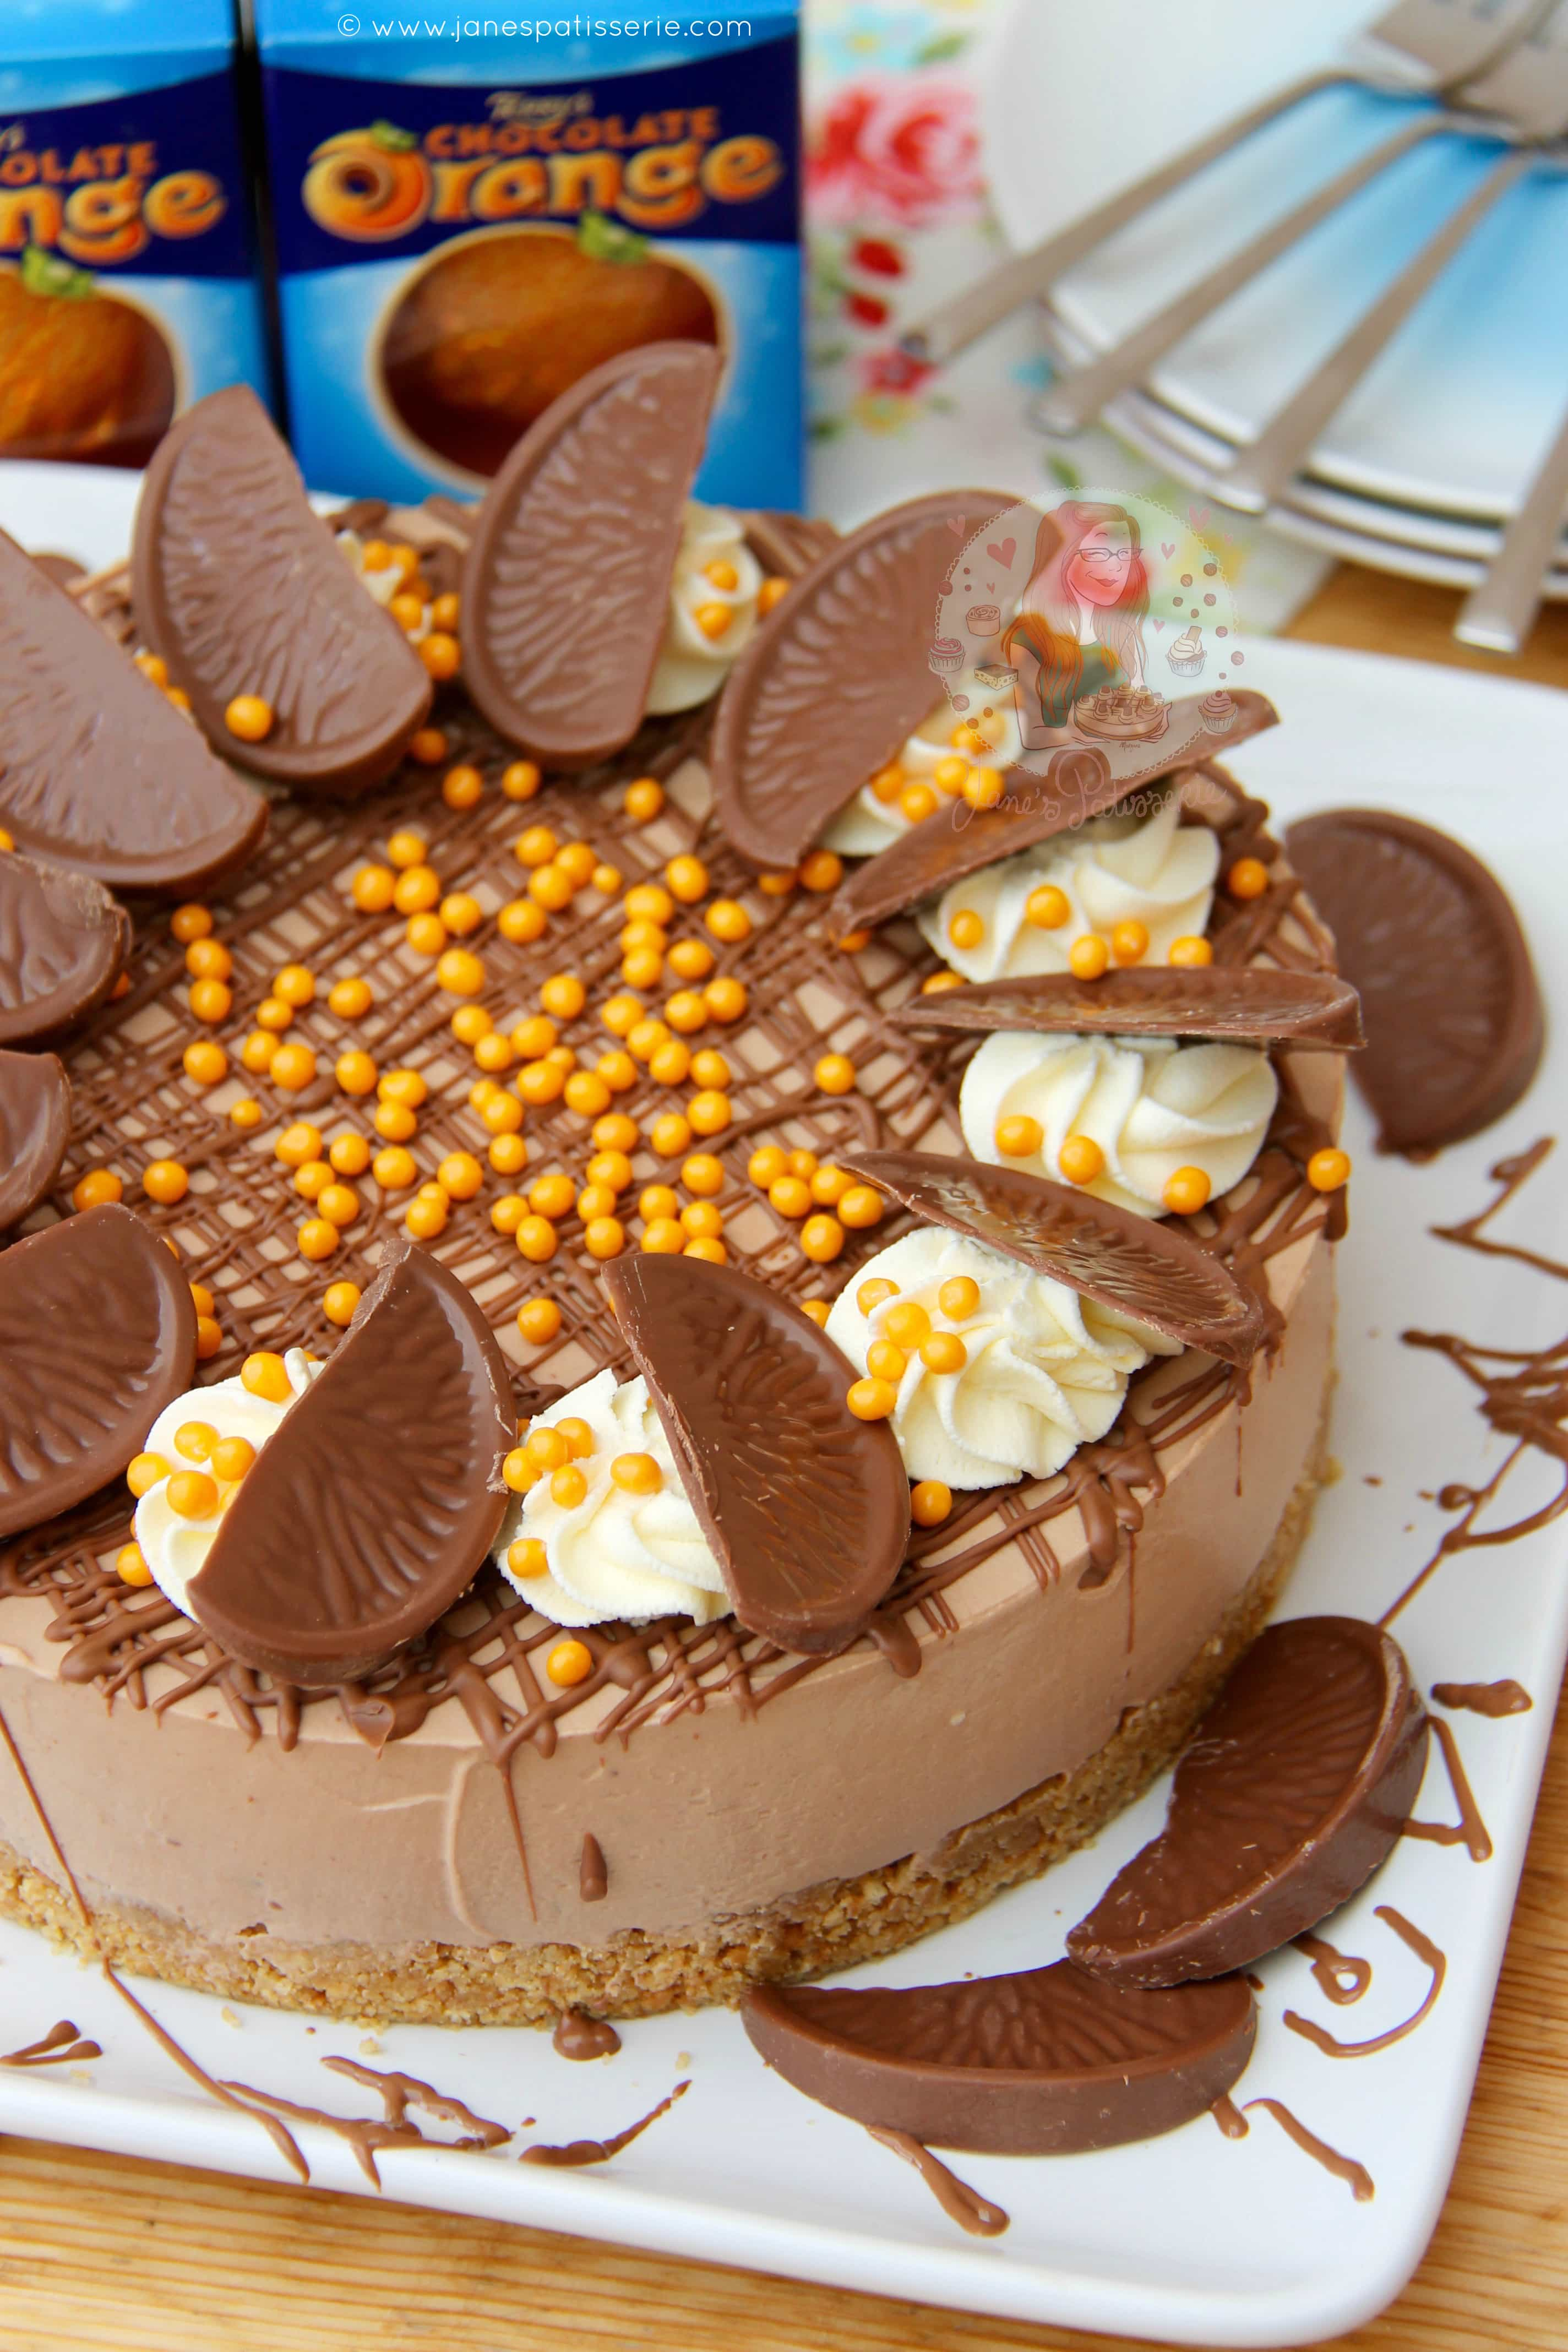 No-Bake Terry's Chocolate Orange Cheesecake! - Jane's Patisserie